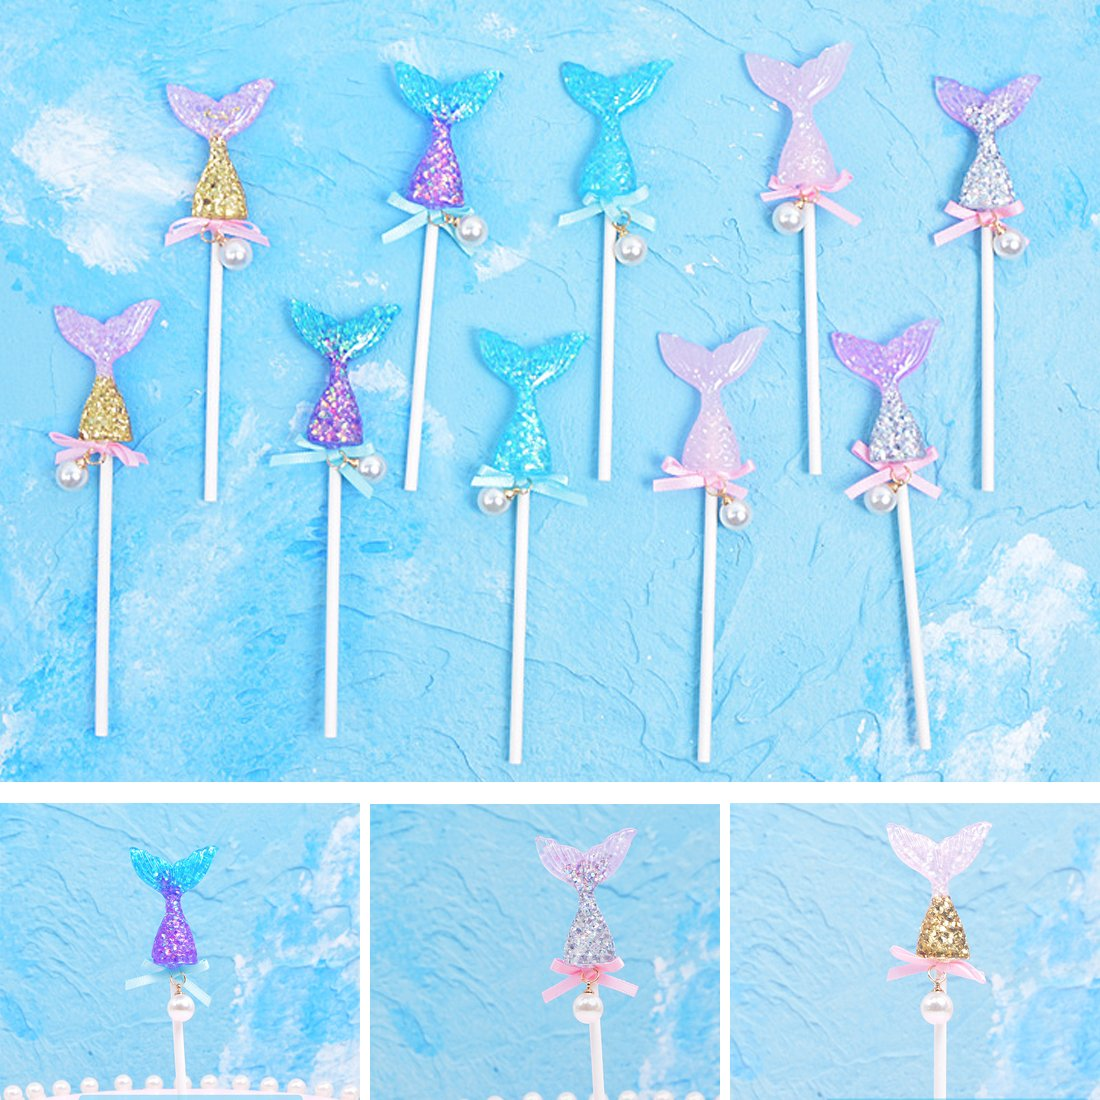 CShopping 10Pack Glitter Colorful Mermaid Tail Cake Topper, Reusable Sequin Mermaid Cake Decoration for Birthday Party, Sea Theme Party, Baby Shower and Wedding by CShopping (Image #4)